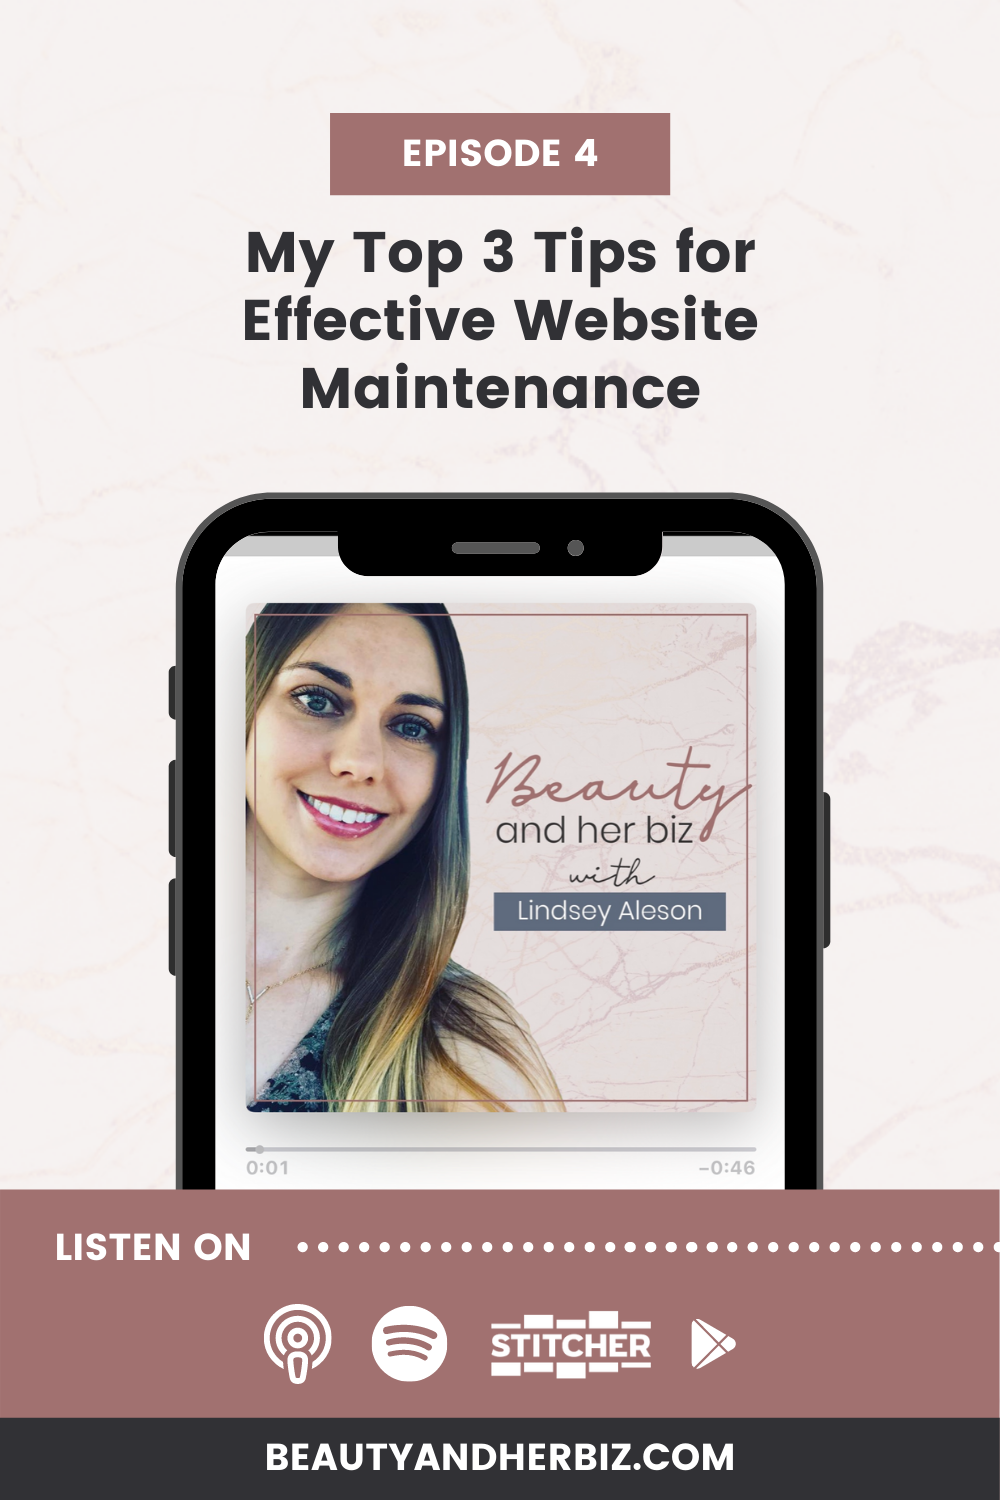 Episode 4 | My Top 3 Tips for Effective Website Maintenance